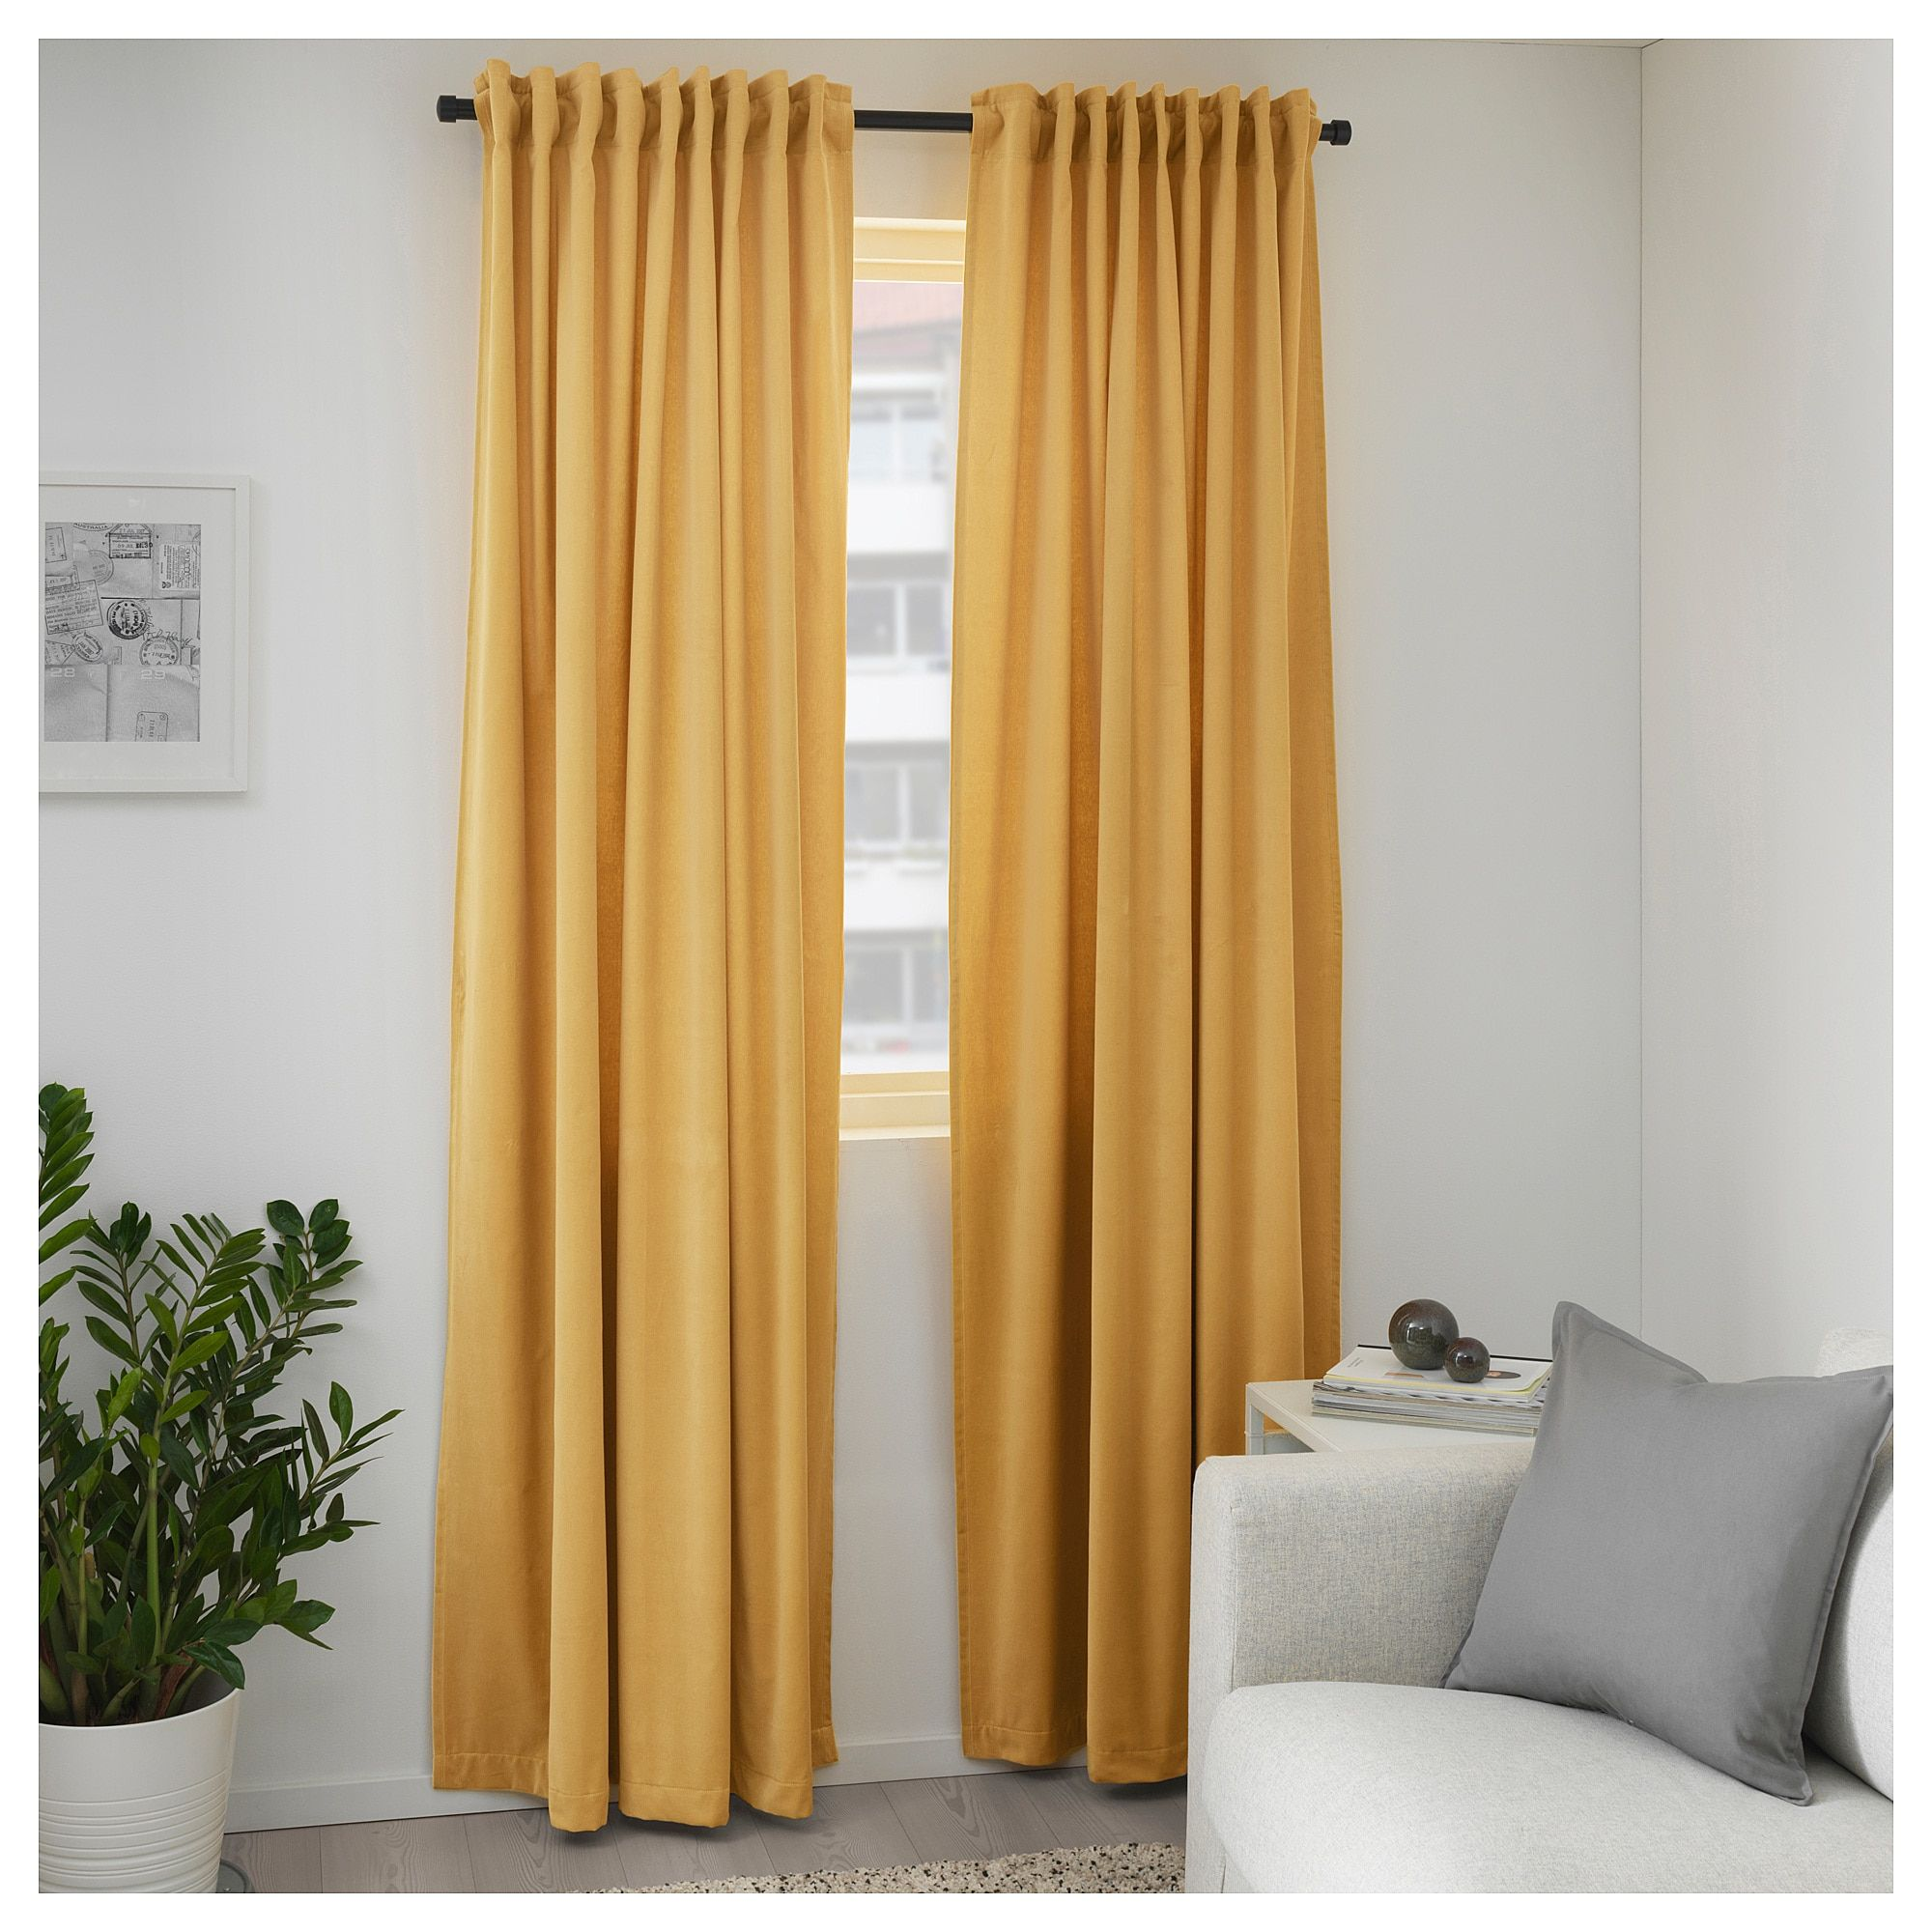 Ikea Sanela Golden Brown Room Darkening Curtains 1 Pair